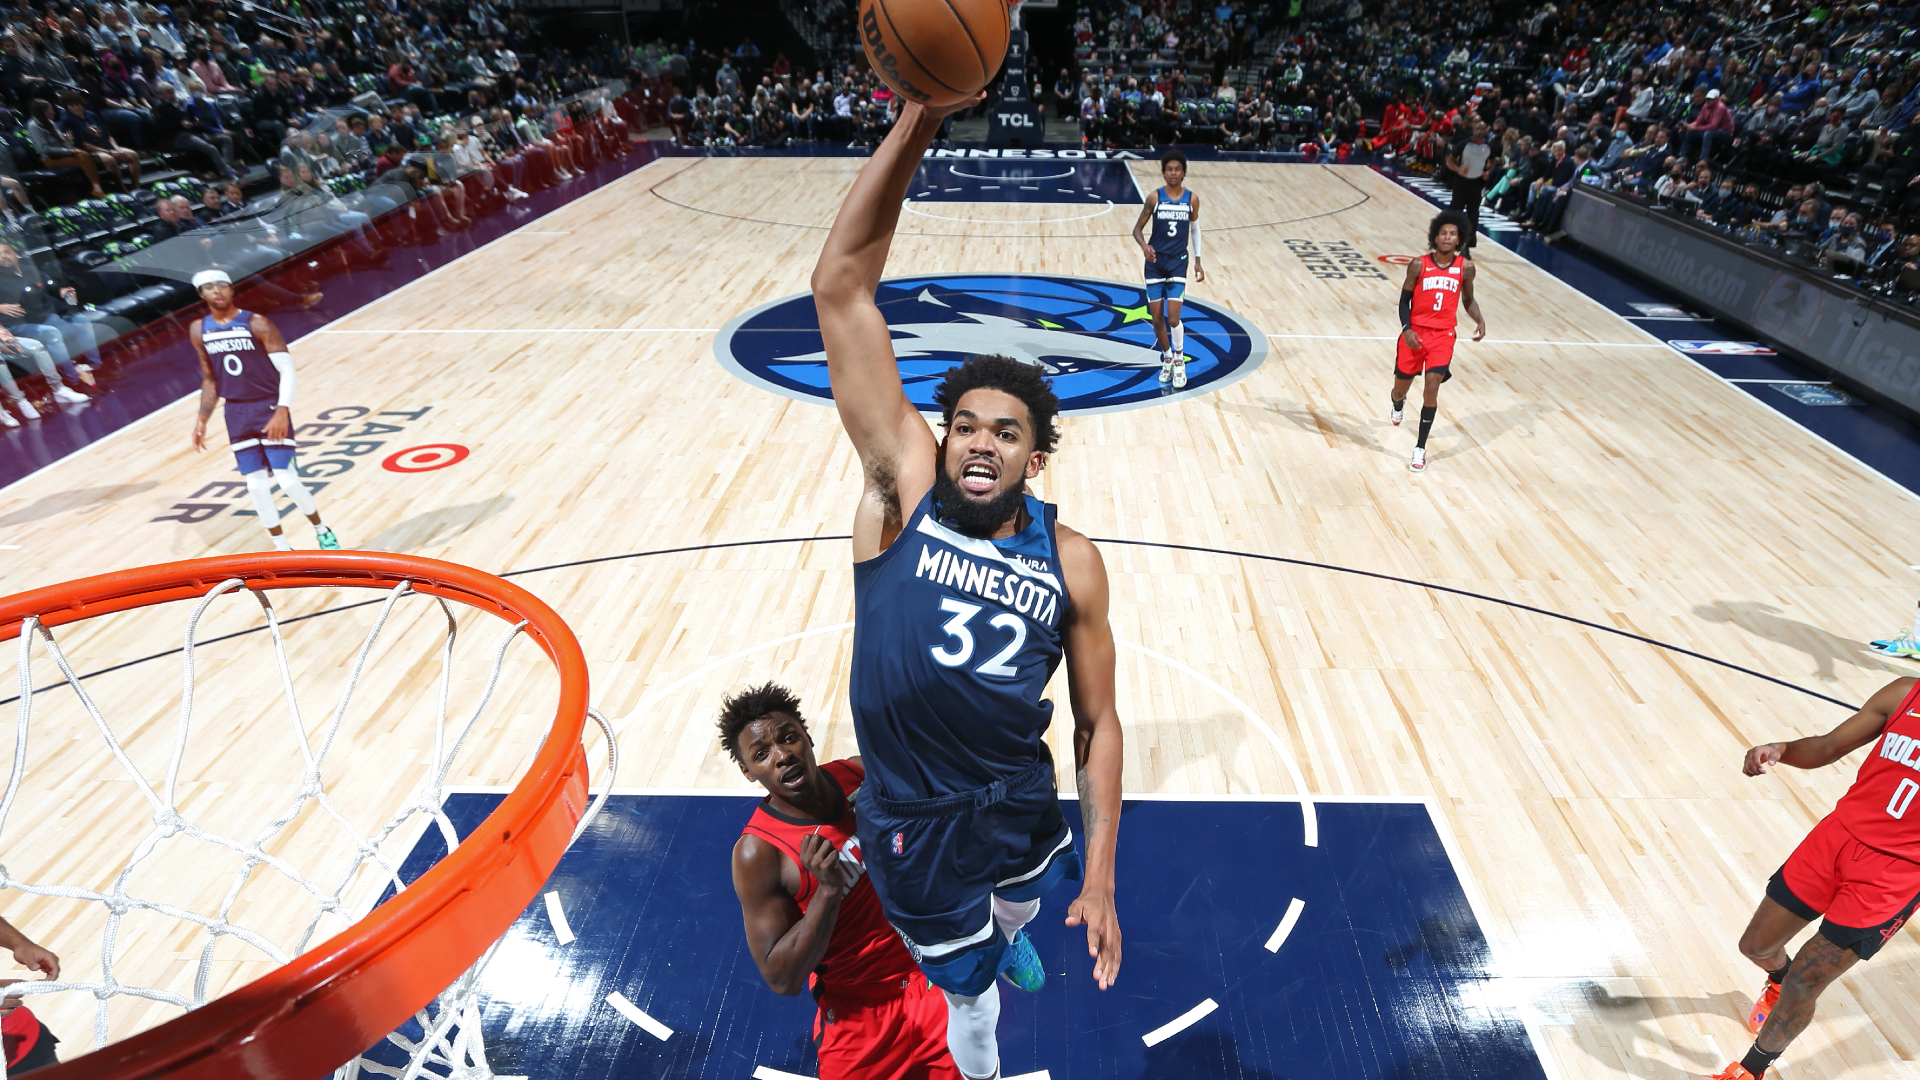 Karl-Anthony Towns' coast-to-coast drive ends with massive dunk